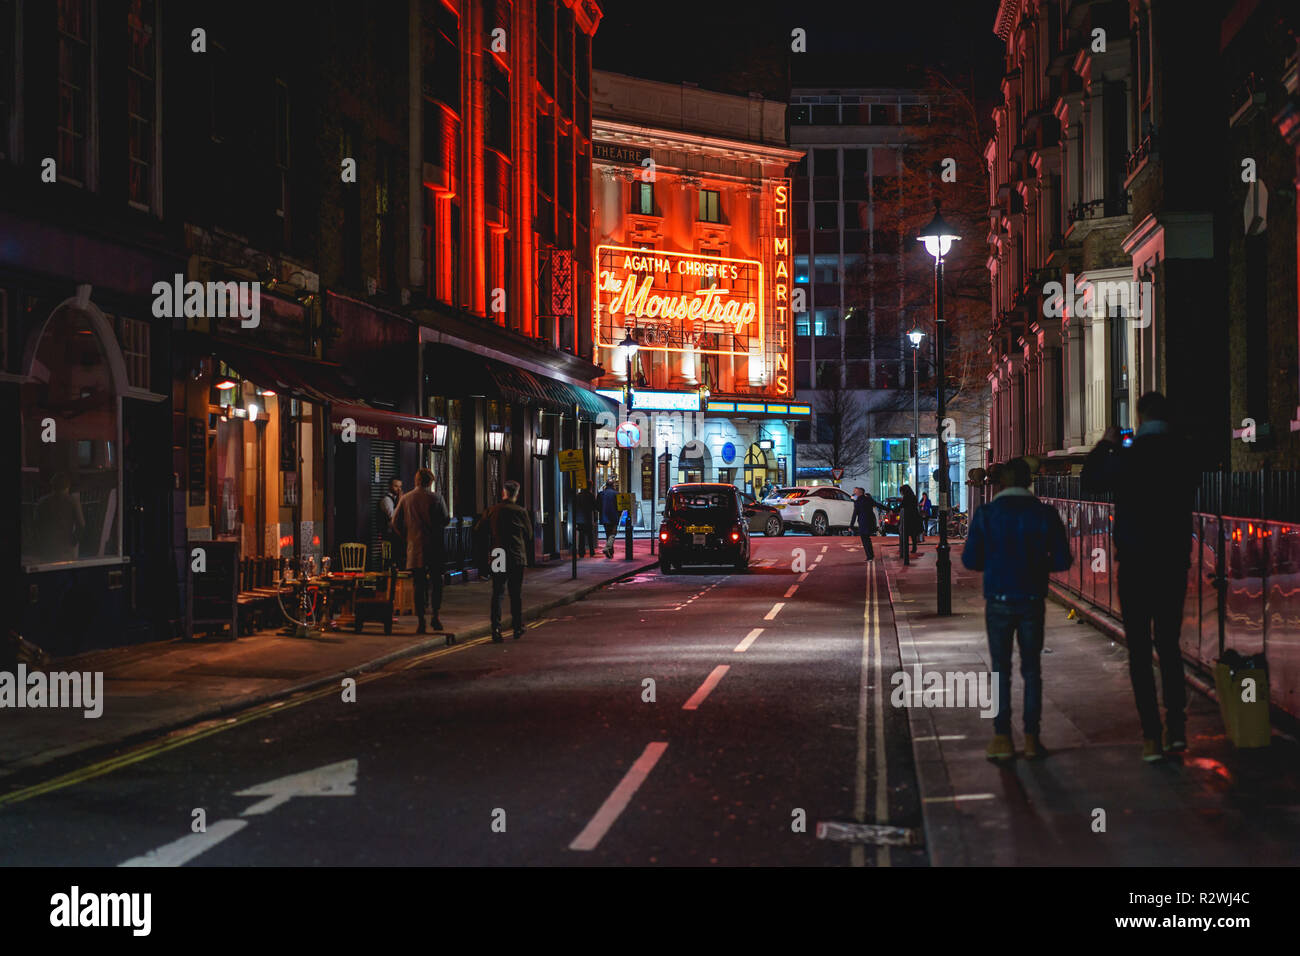 London, UK - February, 2019. A theatre in the West End in central London at night. - Stock Image